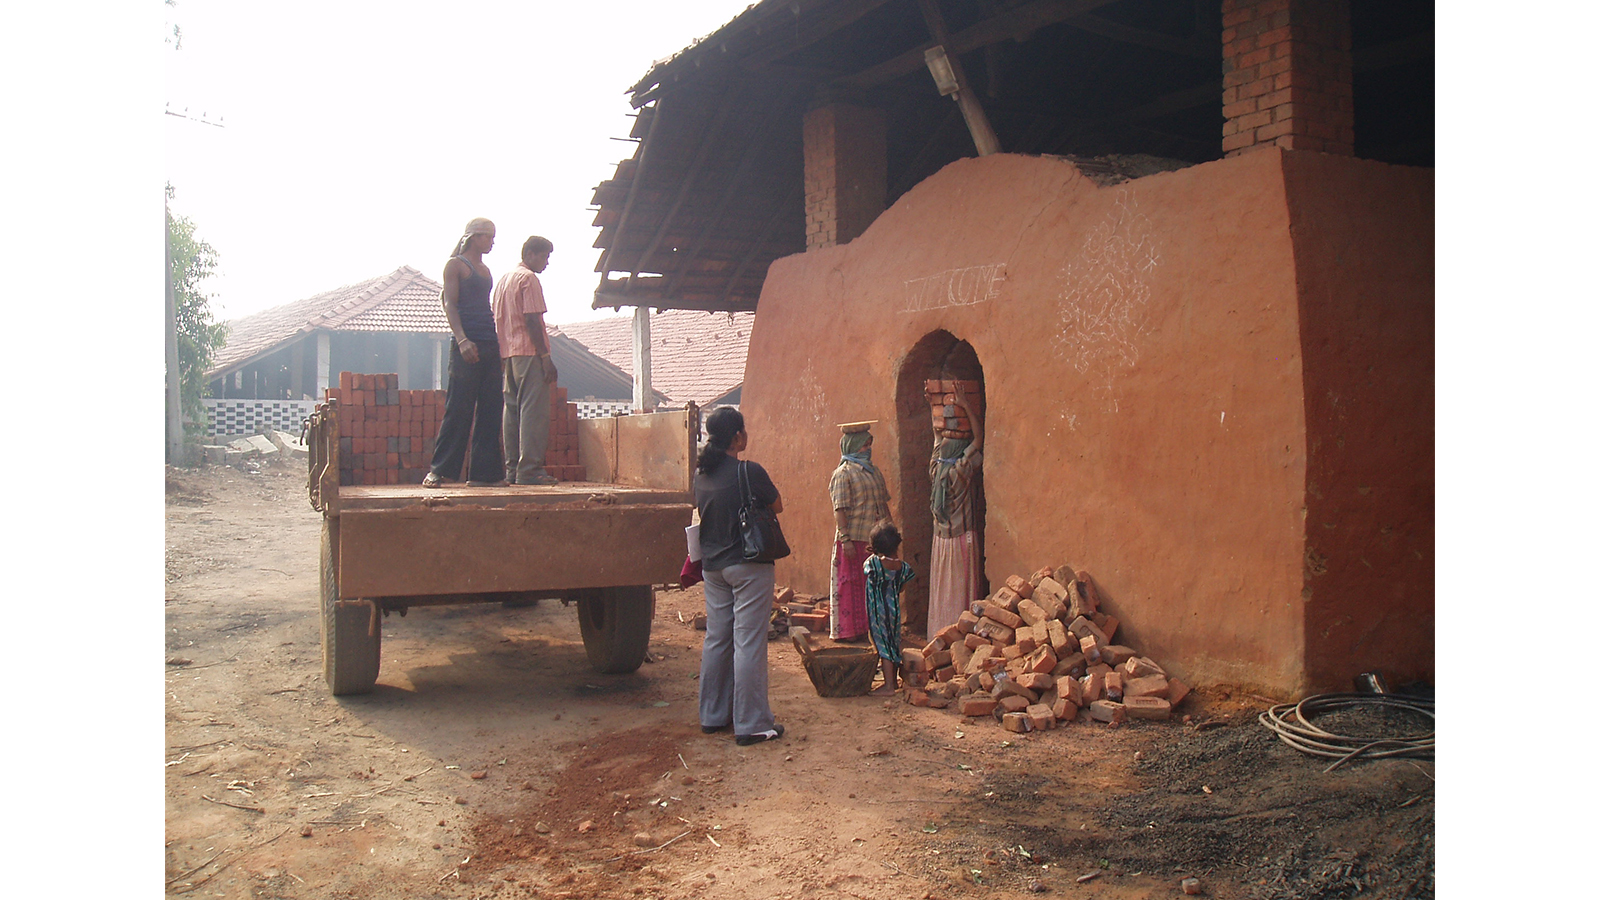 Emissions from South Asian Brick Production